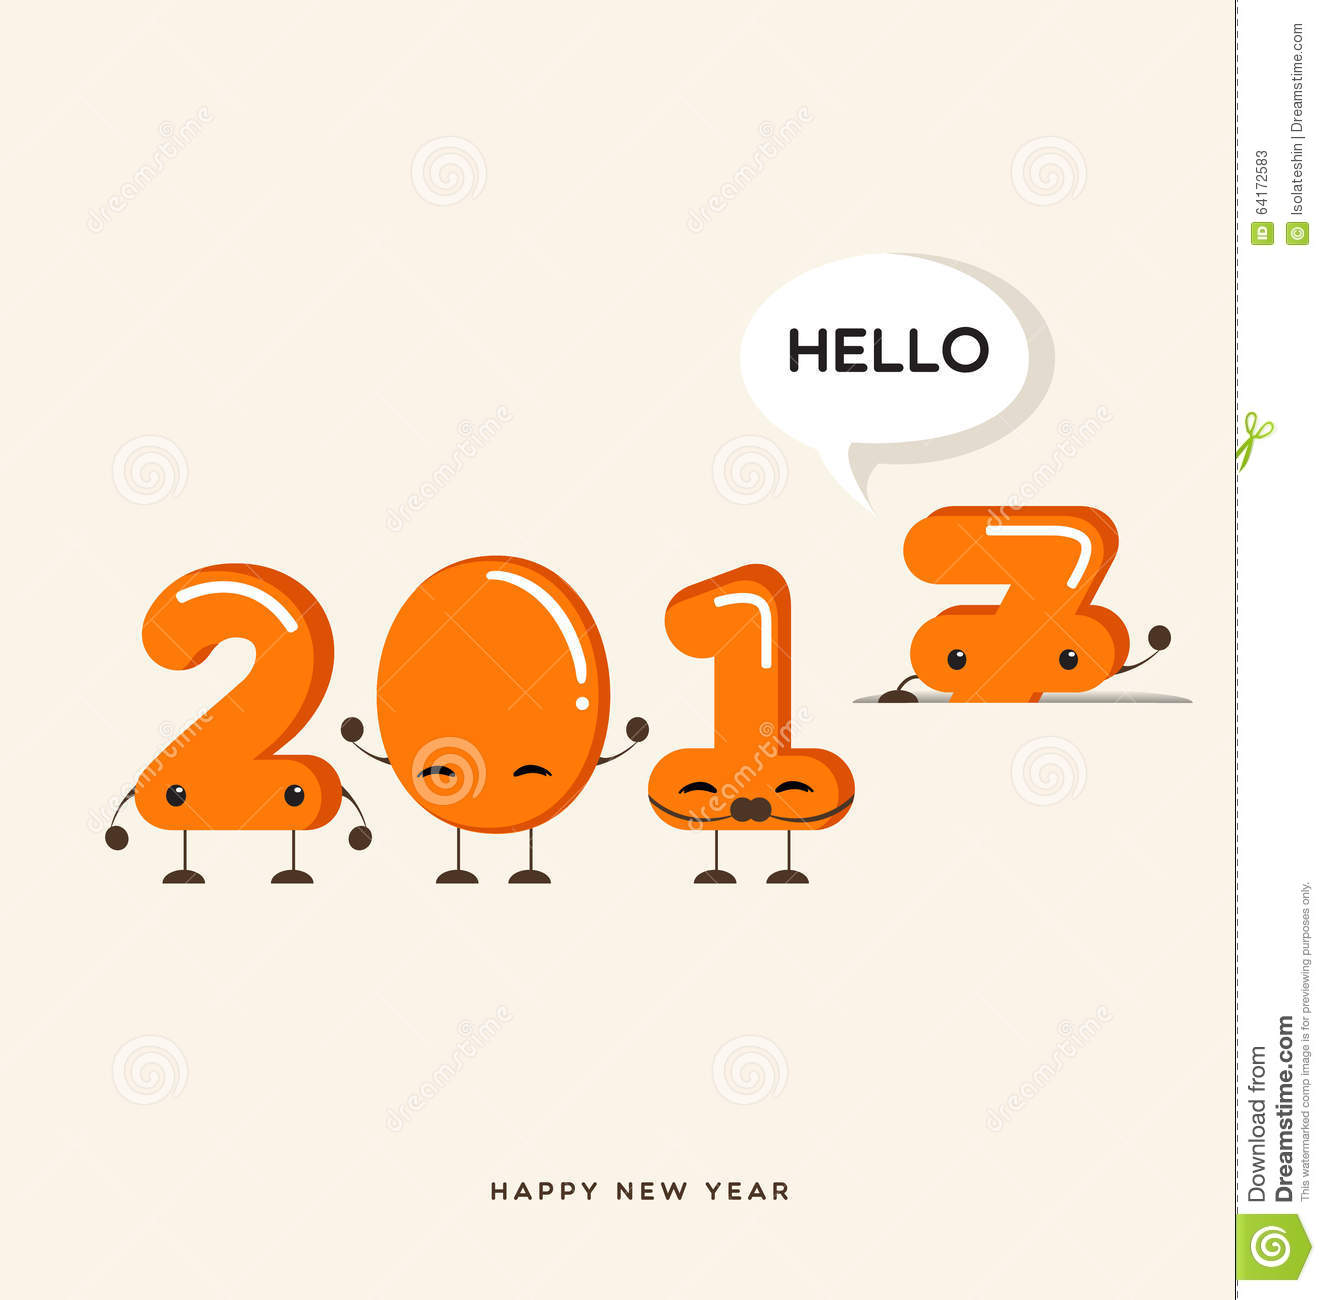 Happy New Year 2017 Greeting Cardfunny Cartoon Number Stock Vector